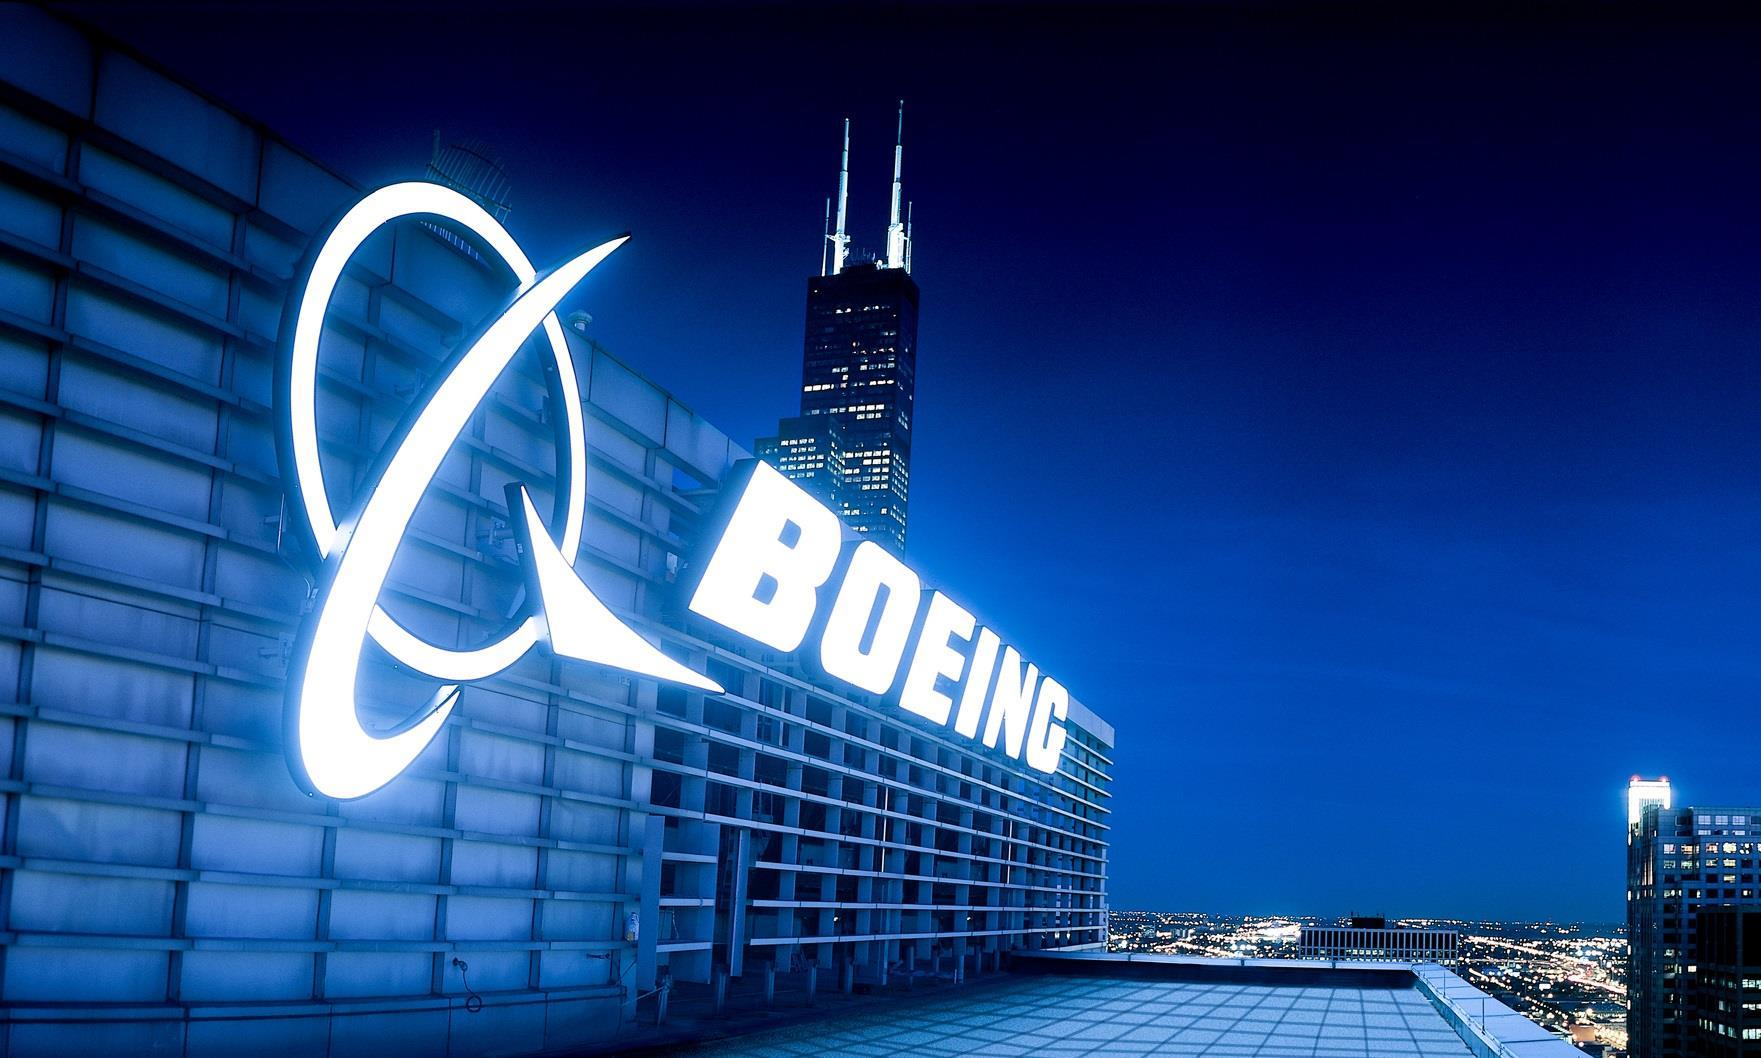 Boeing increased the age of retirement for their CEO